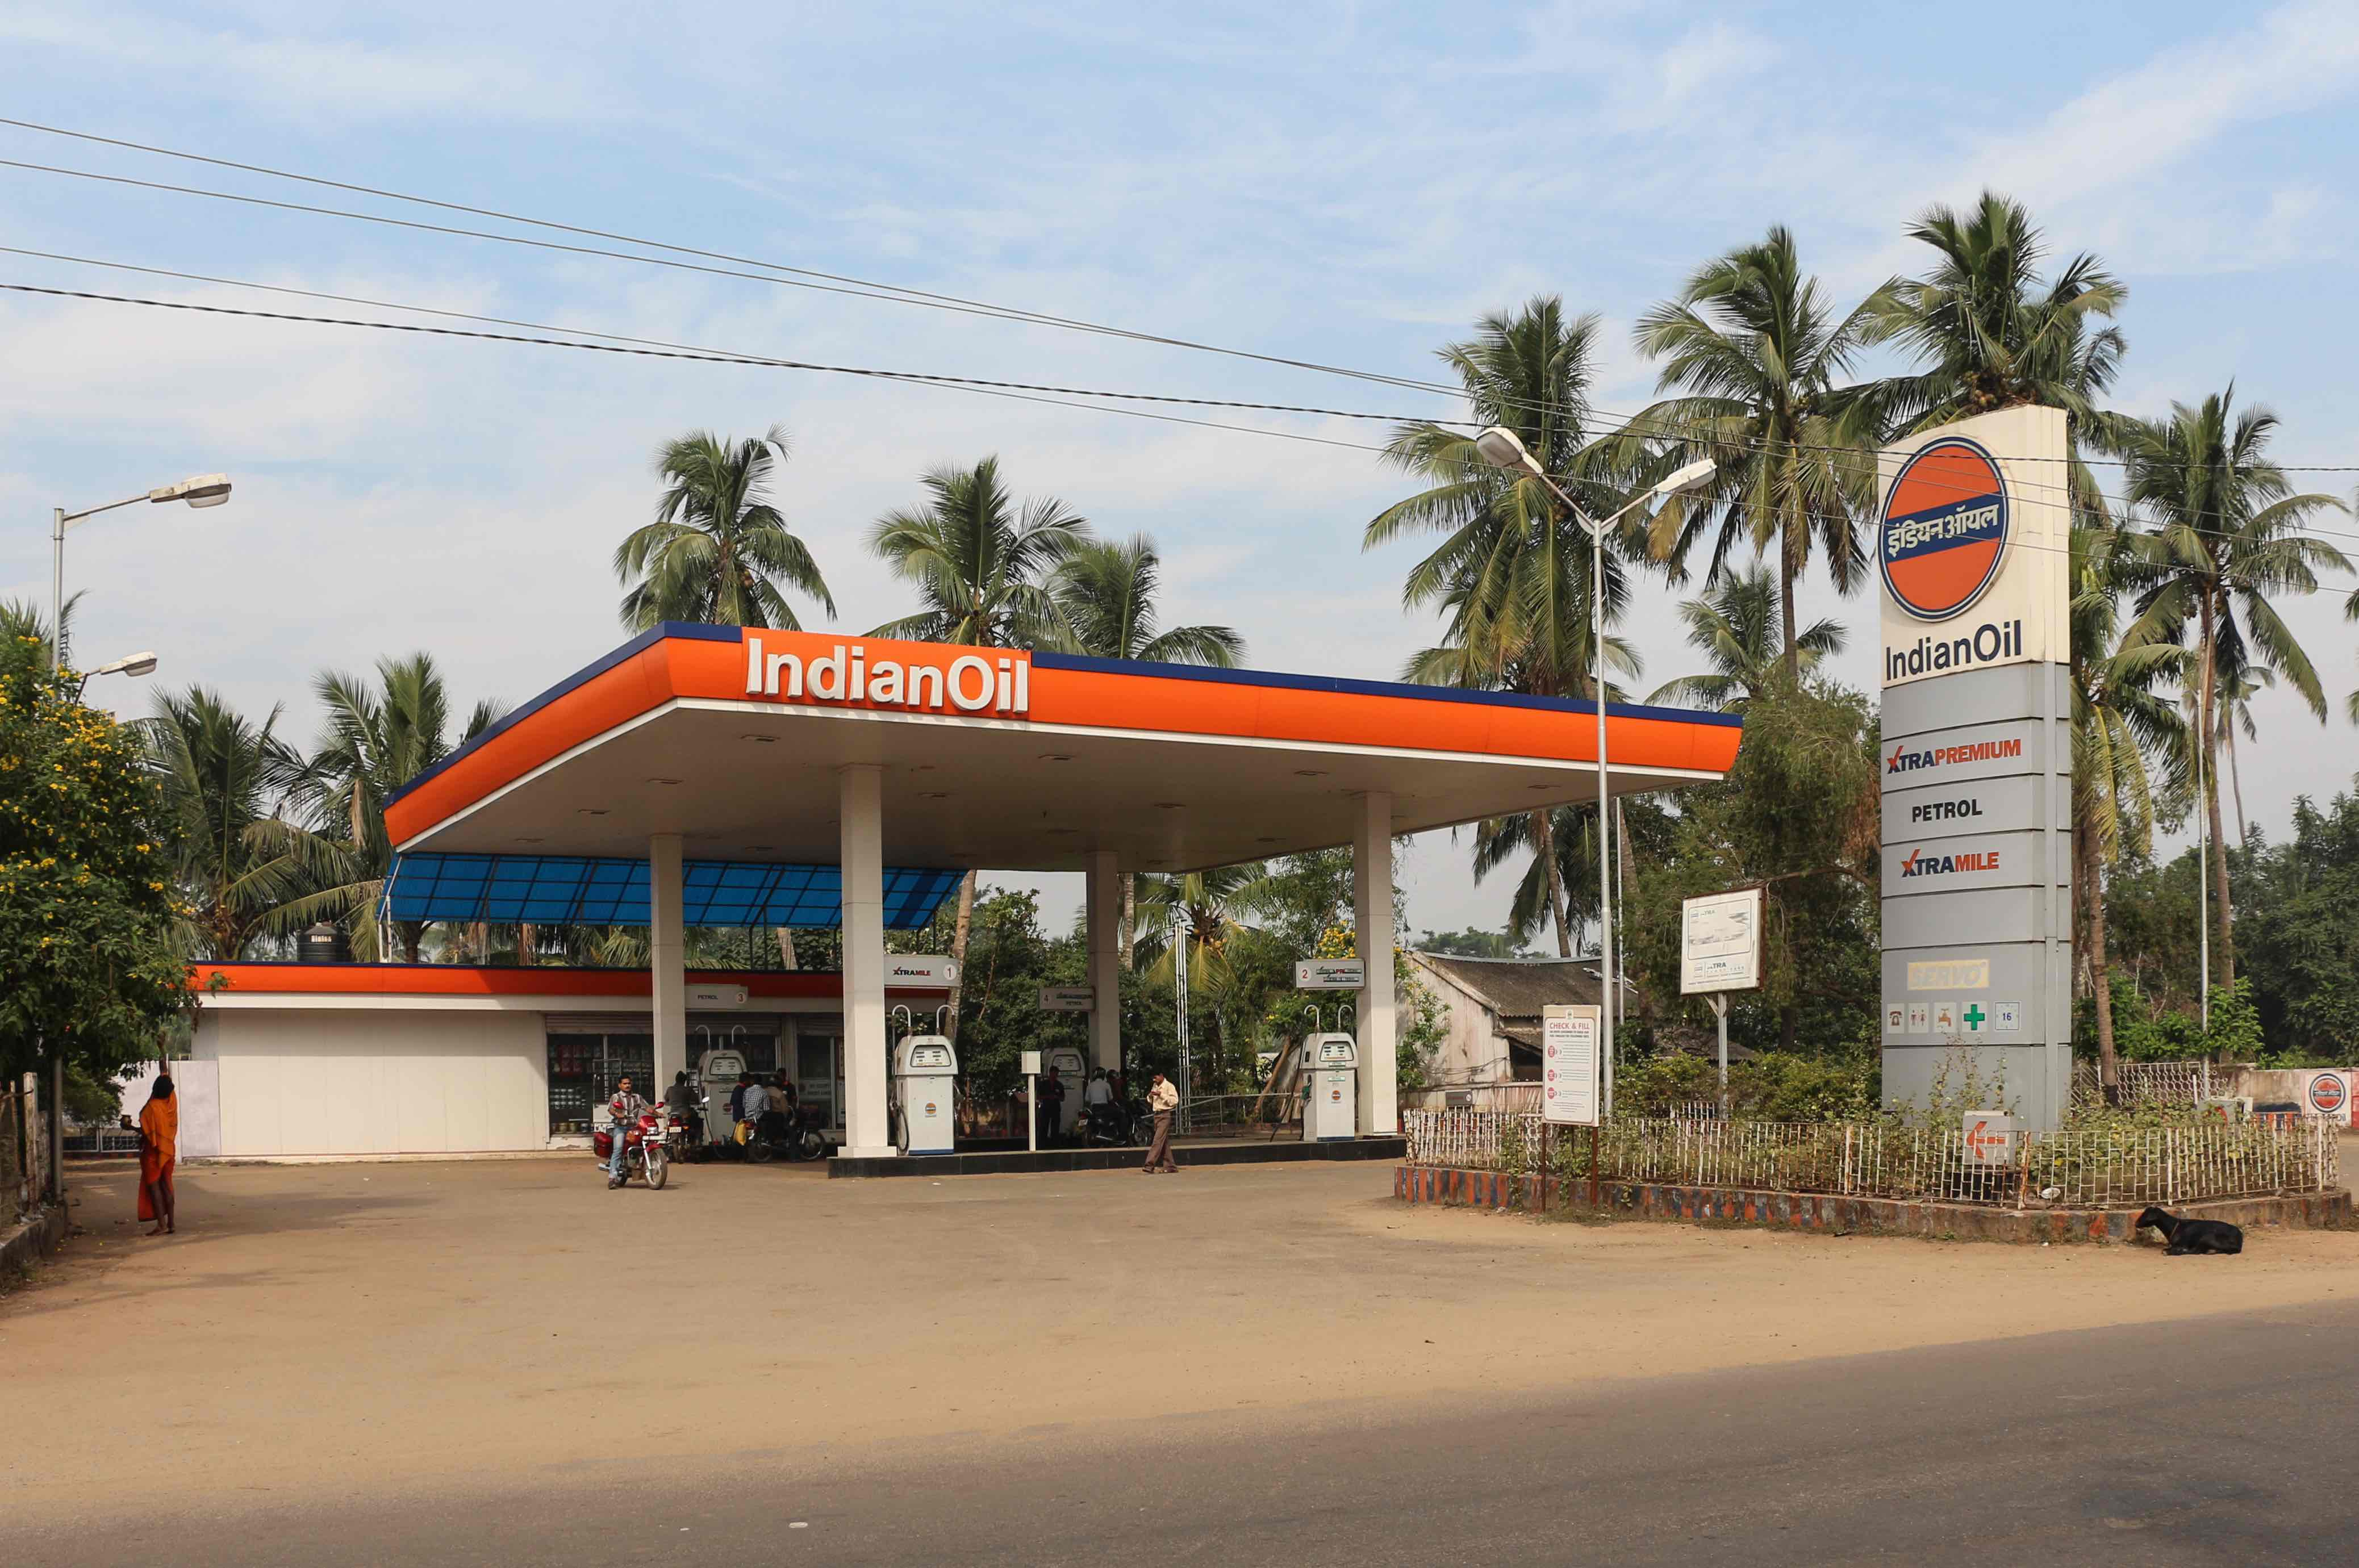 Blink and You Missed It: Drop in Fuel Prices Revised From 60 Paise a Litre to 1 Paisa